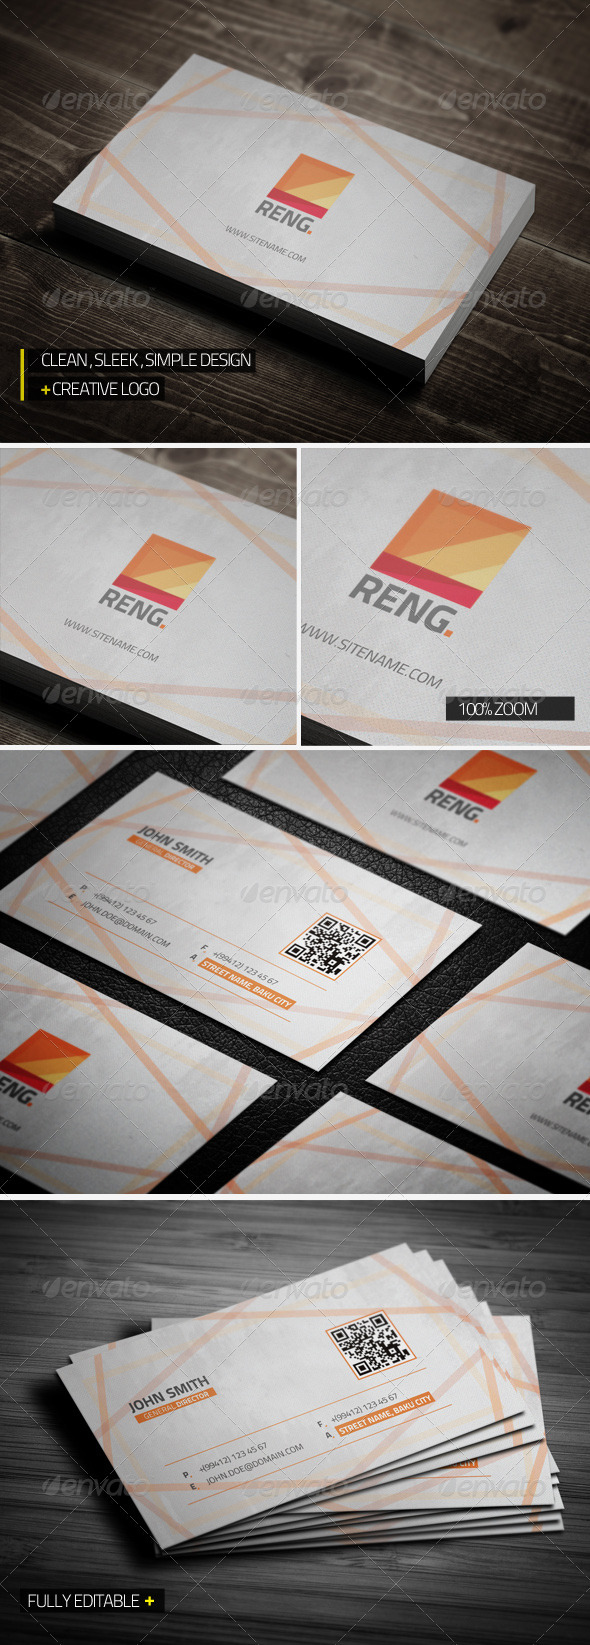 Reng Creative Business Card - Creative Business Cards